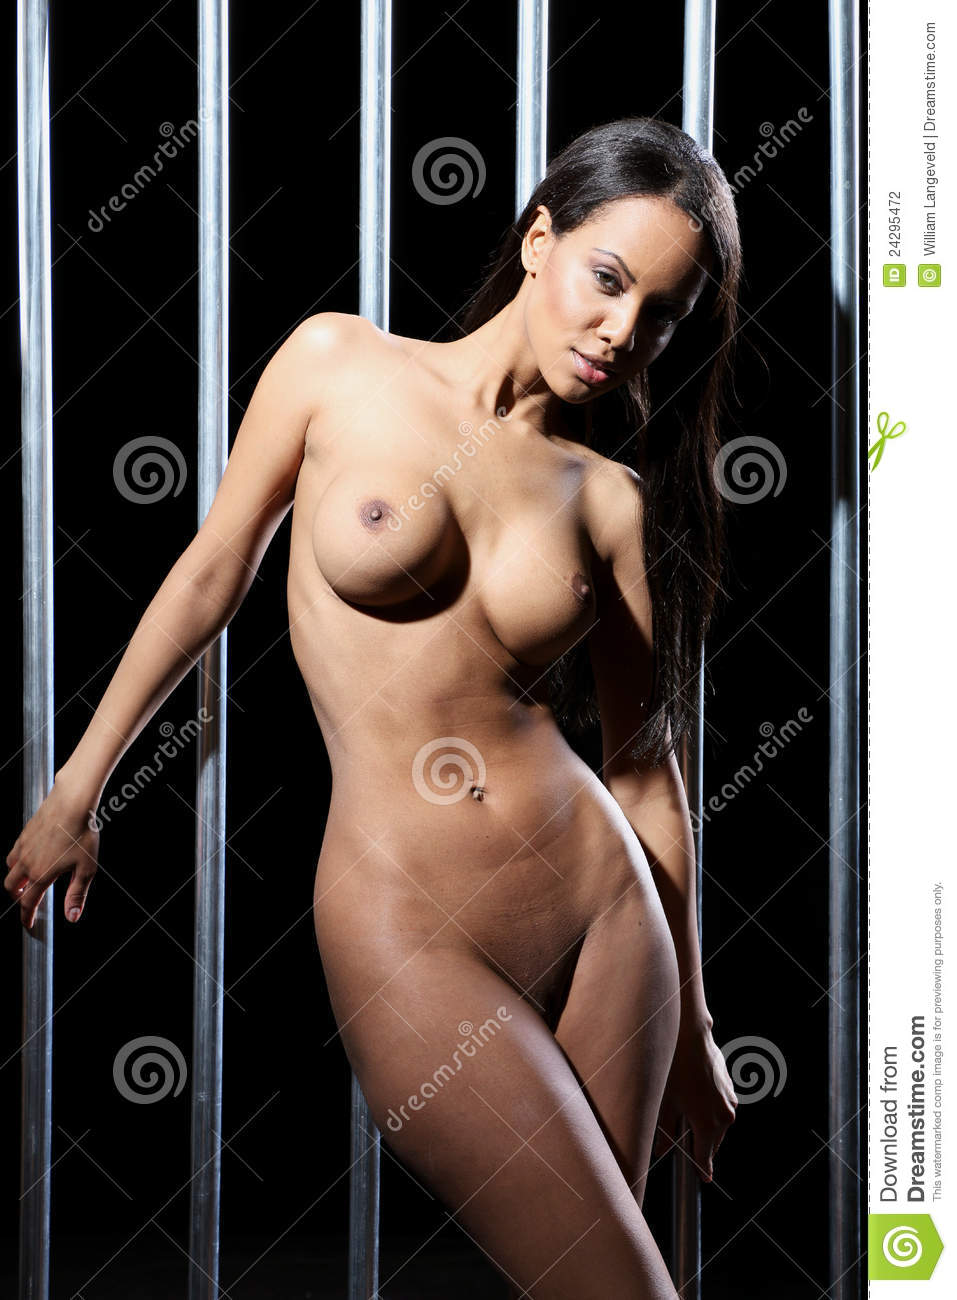 Naked prison woman jail nude